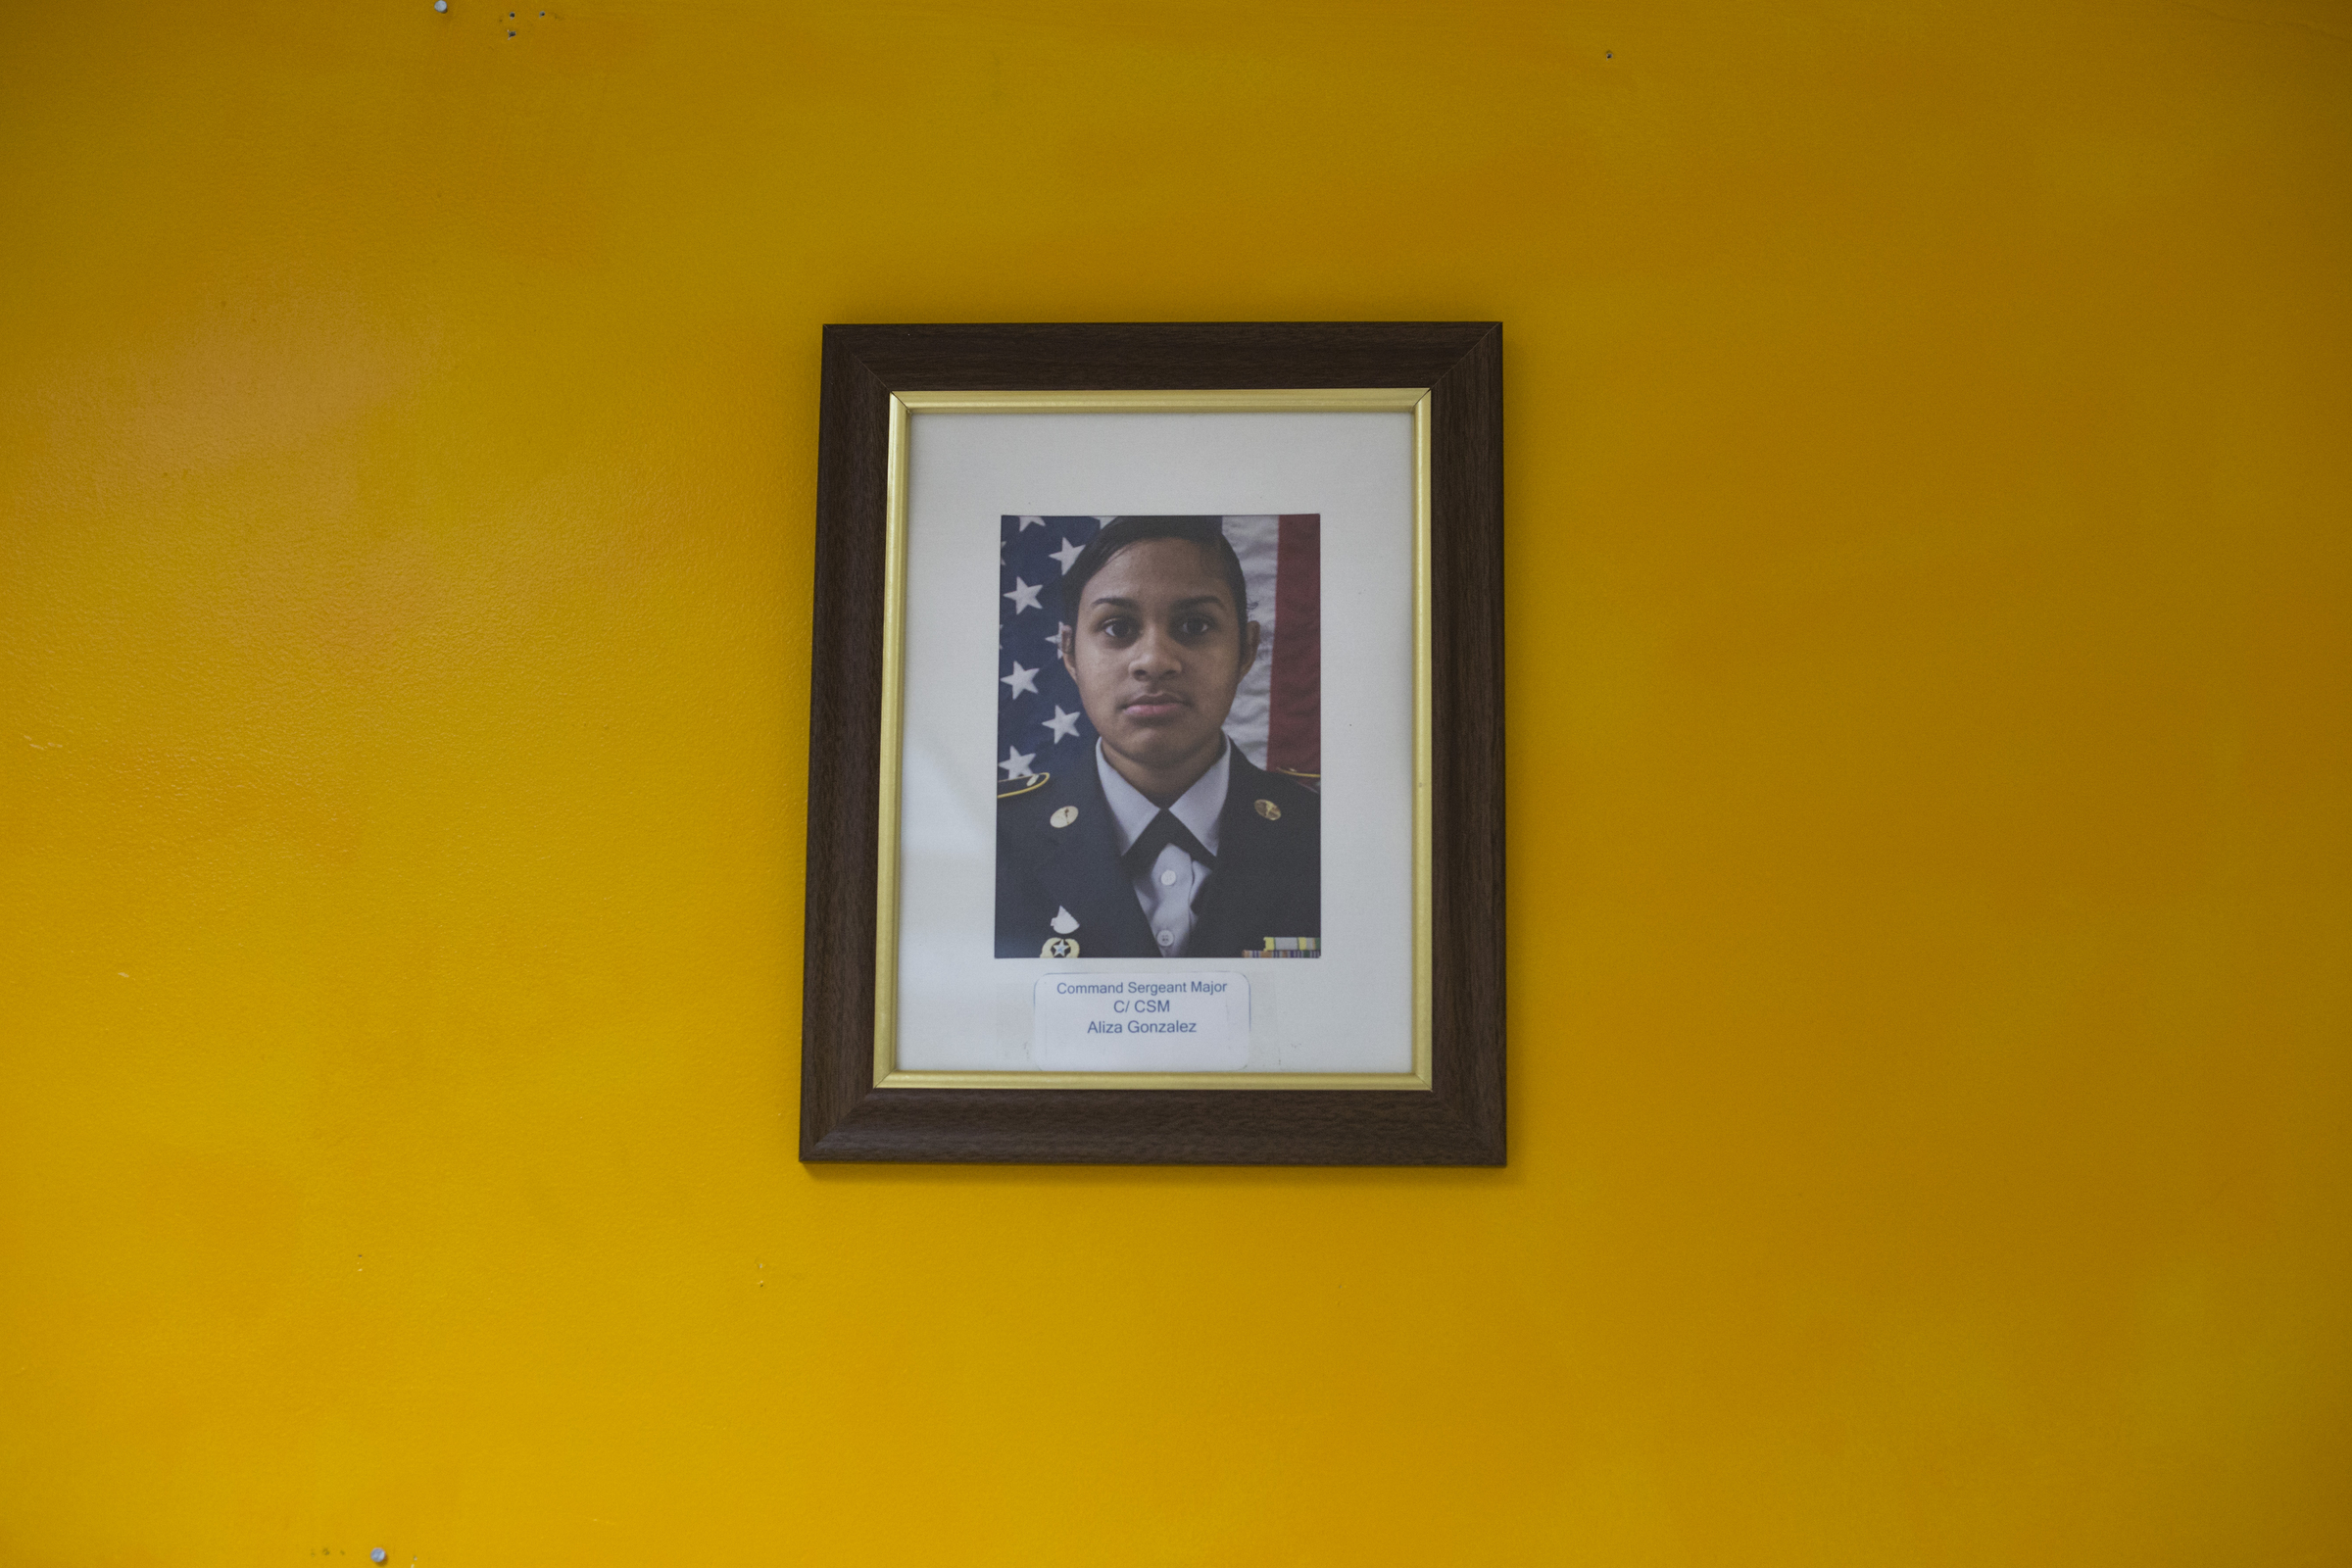 A single photograph featuring Command Sergeant Major Aliza Gonzalez, 17, hangs on the wall in a JROTC classroom in Springfield, Mass., on Monday, September, 11, 2017.